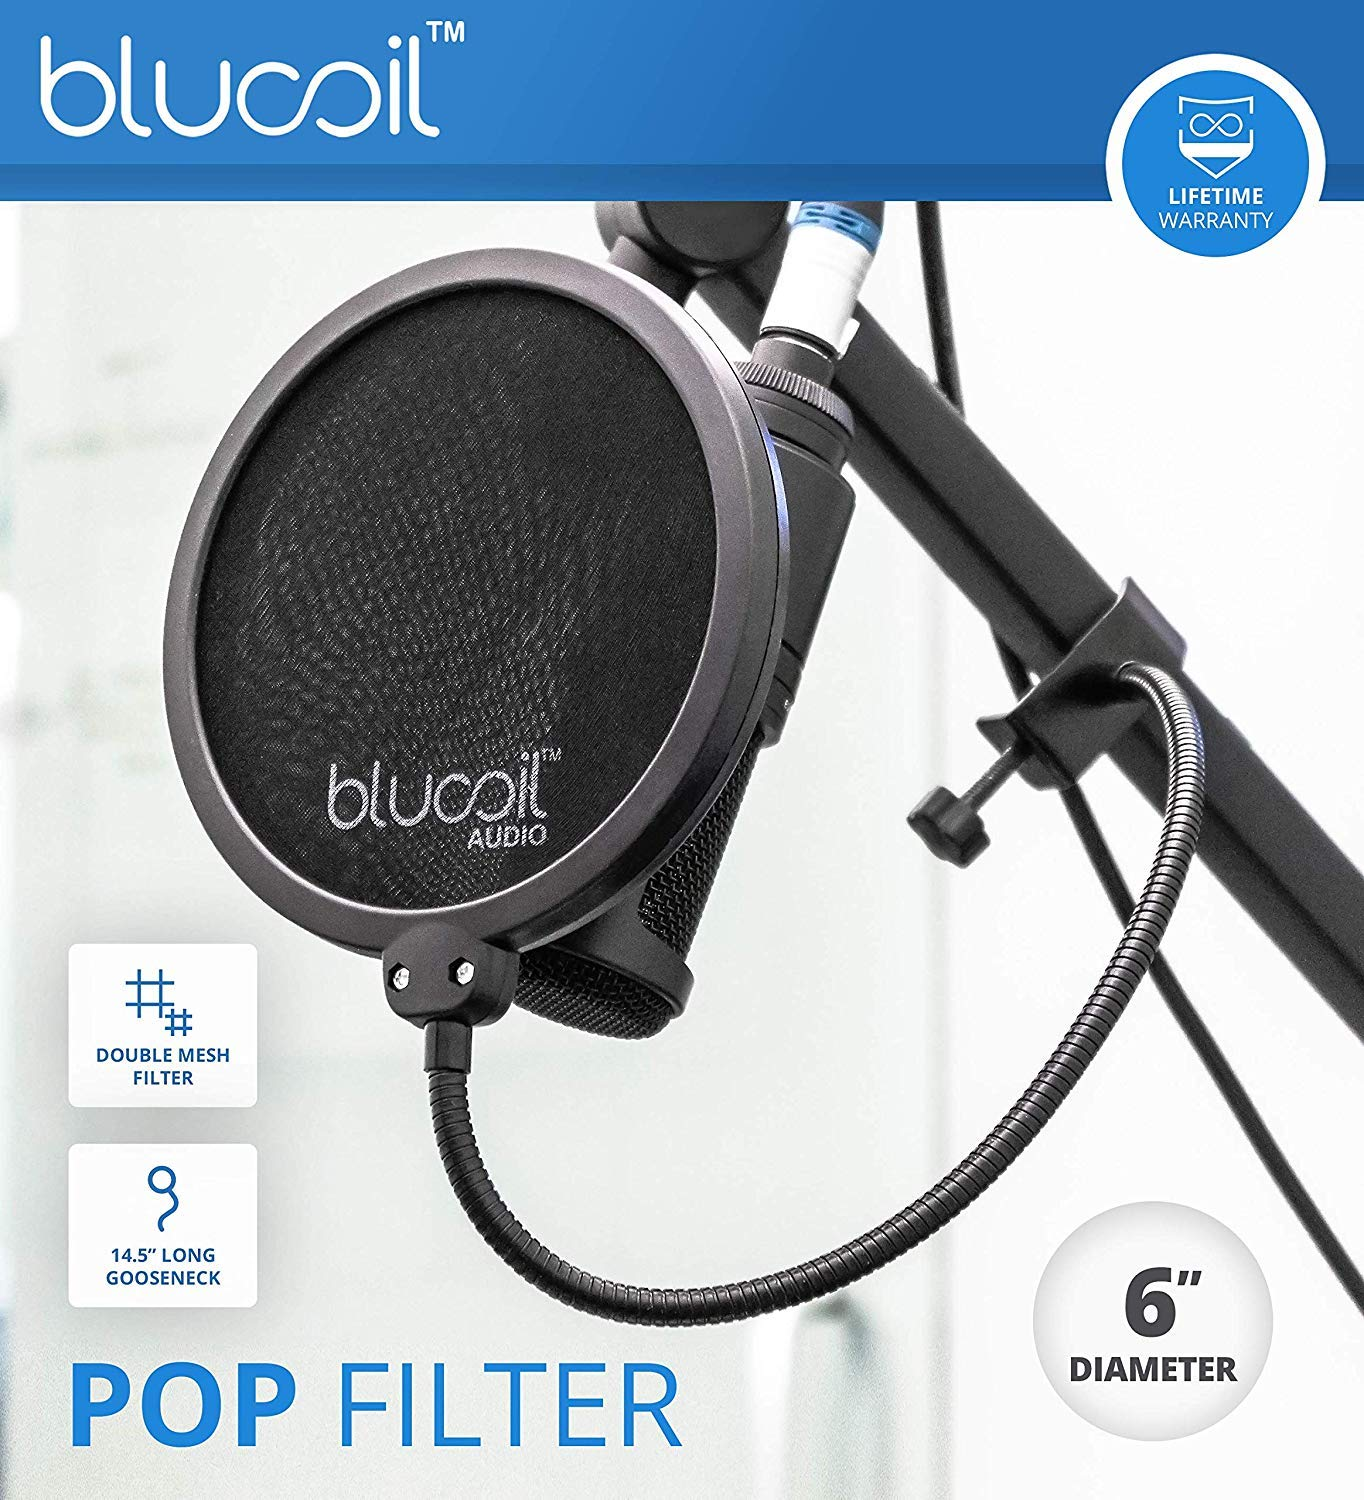 Blucoil 10-FT Balanced XLR Cable and 5x Cable Ties TC Helicon GO XLR 4-Channel Mixer for Online Broadcasting Bundle with Audio-Technica AT2020 Condenser Microphone Pop Filter